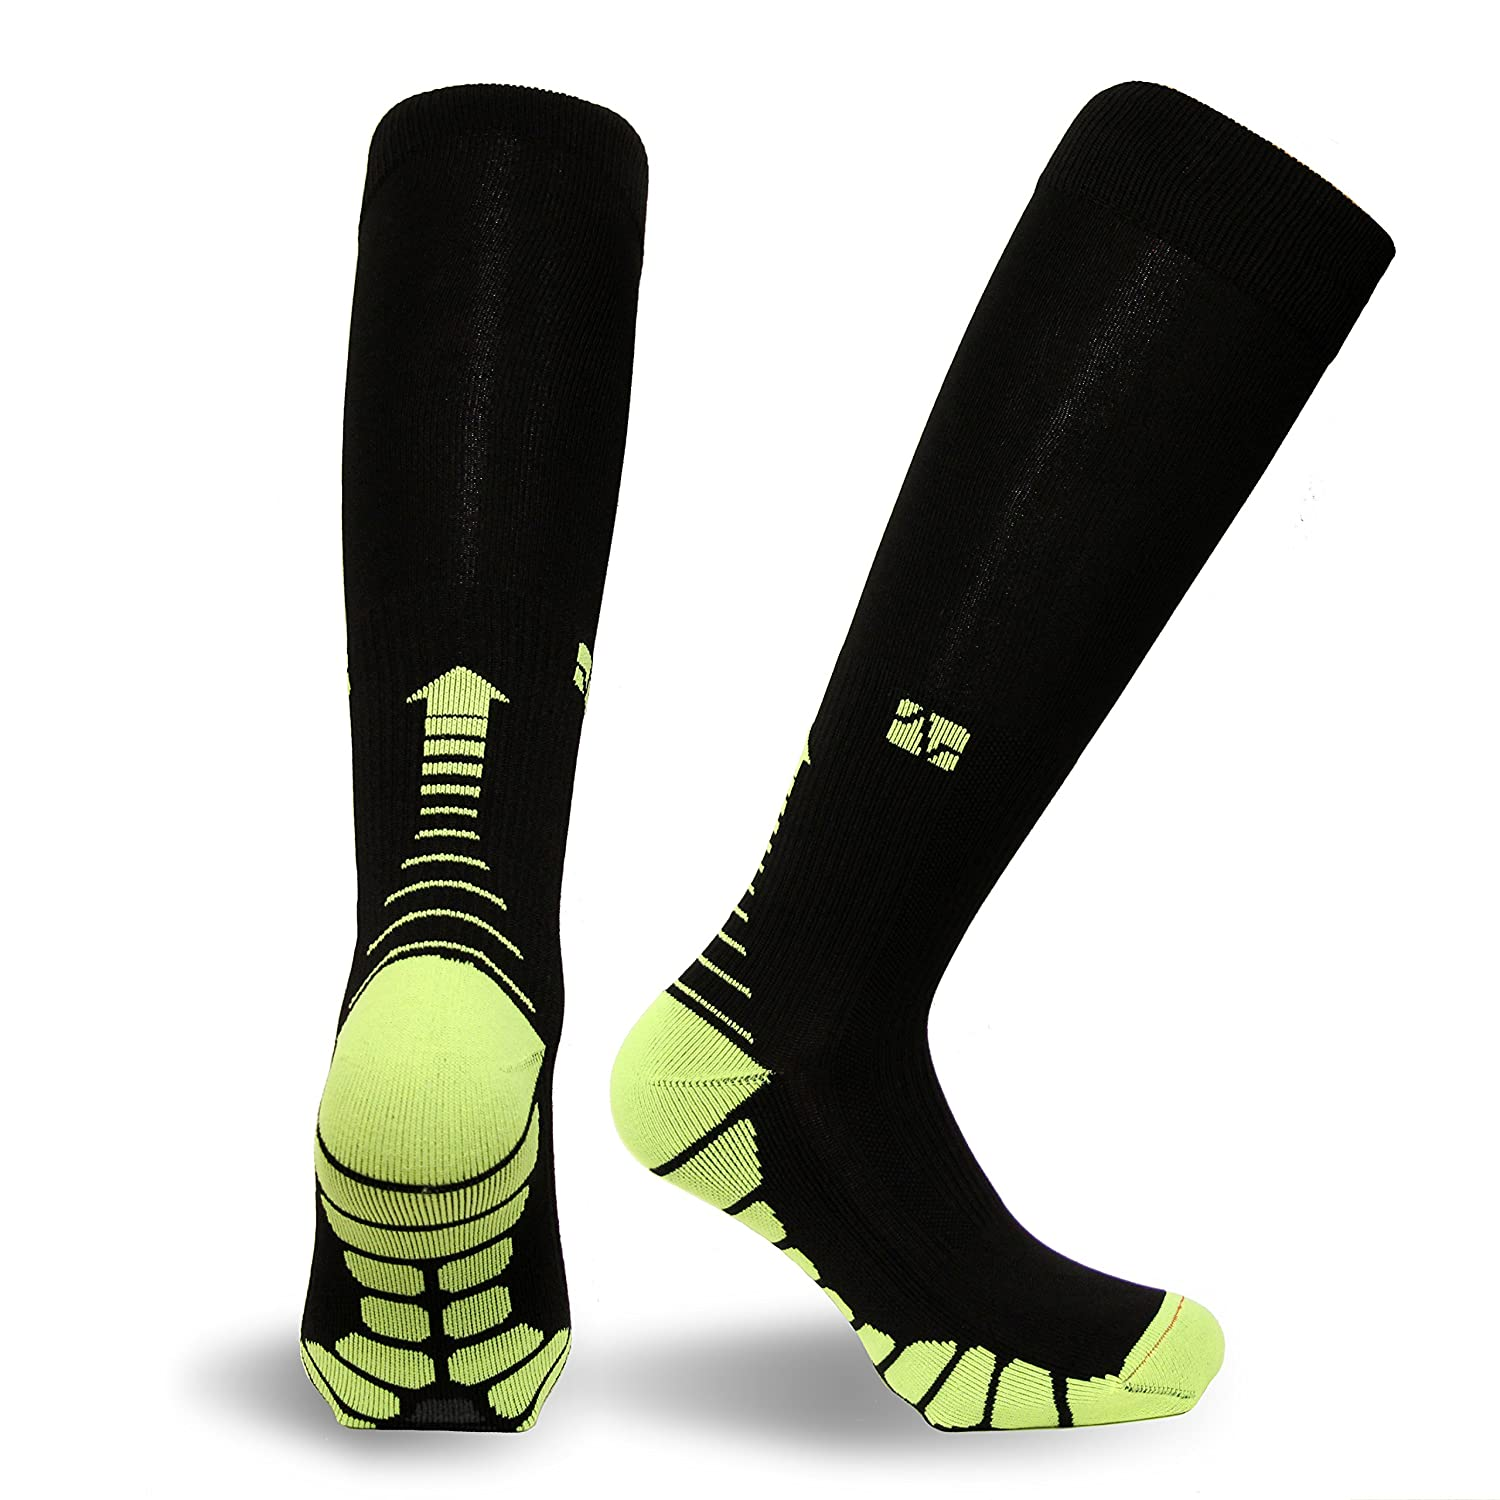 VitalSox VT1211 Compression Socks